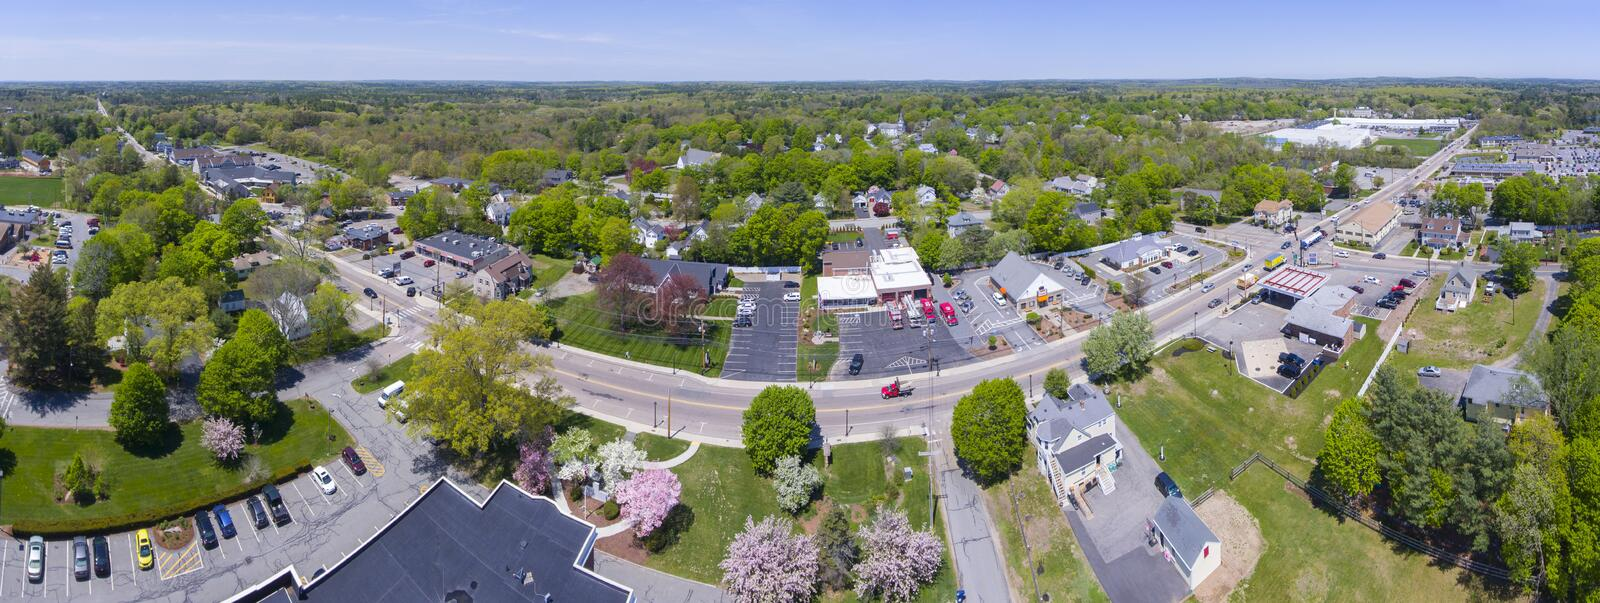 Millis aerial view panorama, Massachusetts, USA. Aerial view of Millis town center over Main Street panorama in spring, Millis, Massachusetts, USA stock photography